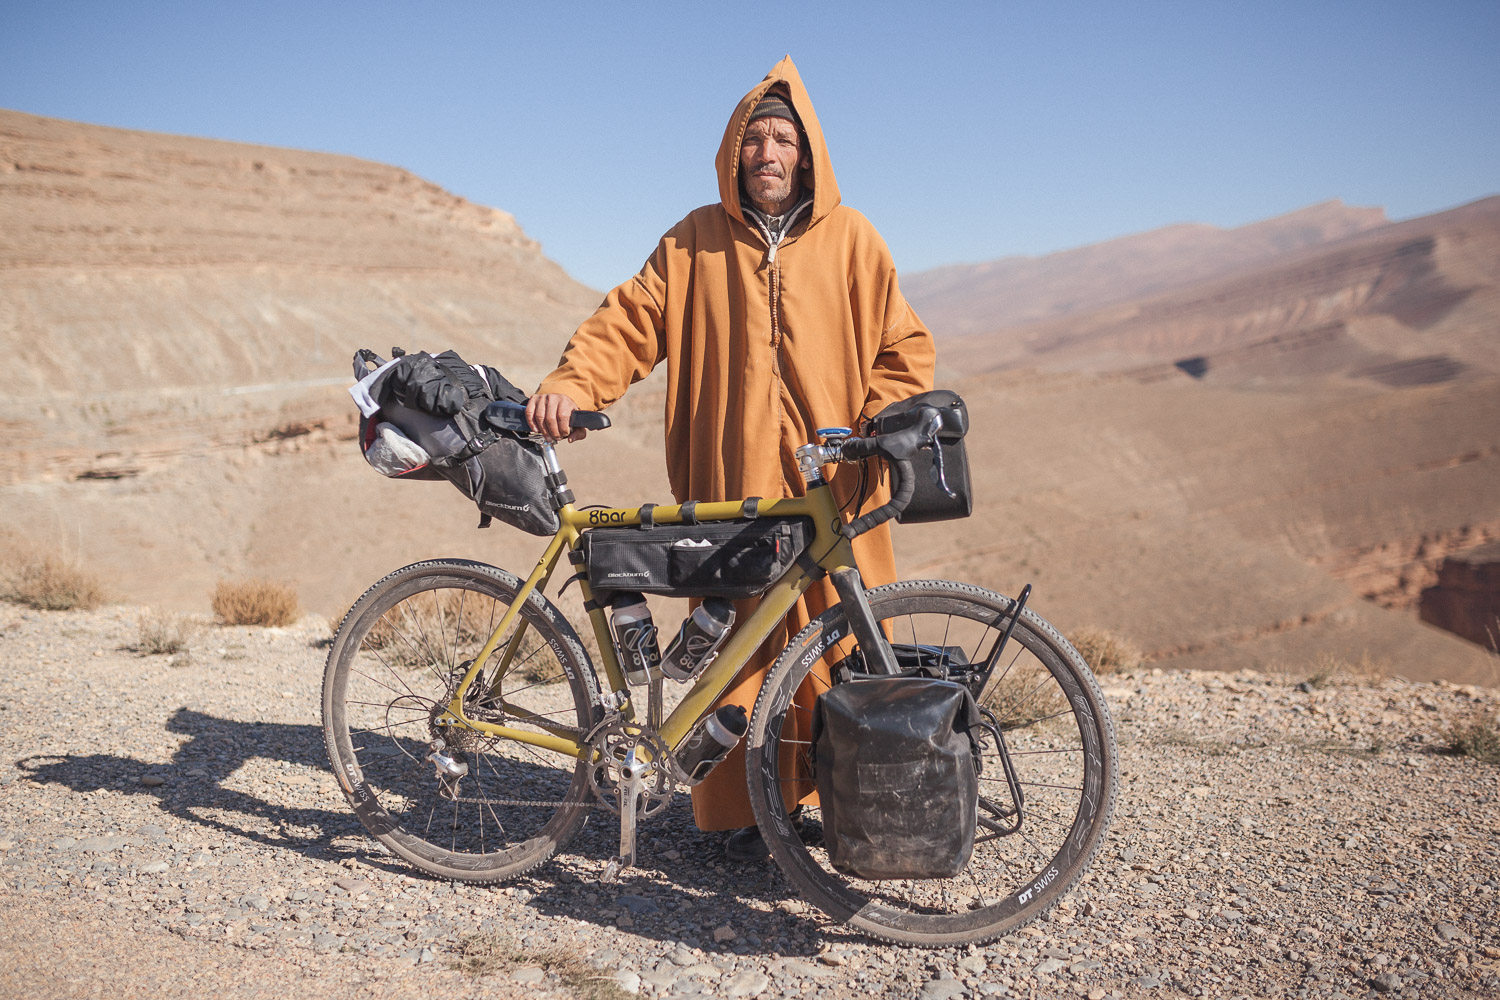 8bar bikes adventures morocco gravel 20151213 0133 bearbeitet 2 - 8bar Adventures - Marokko - Atlasgebirge - Teil 1/2